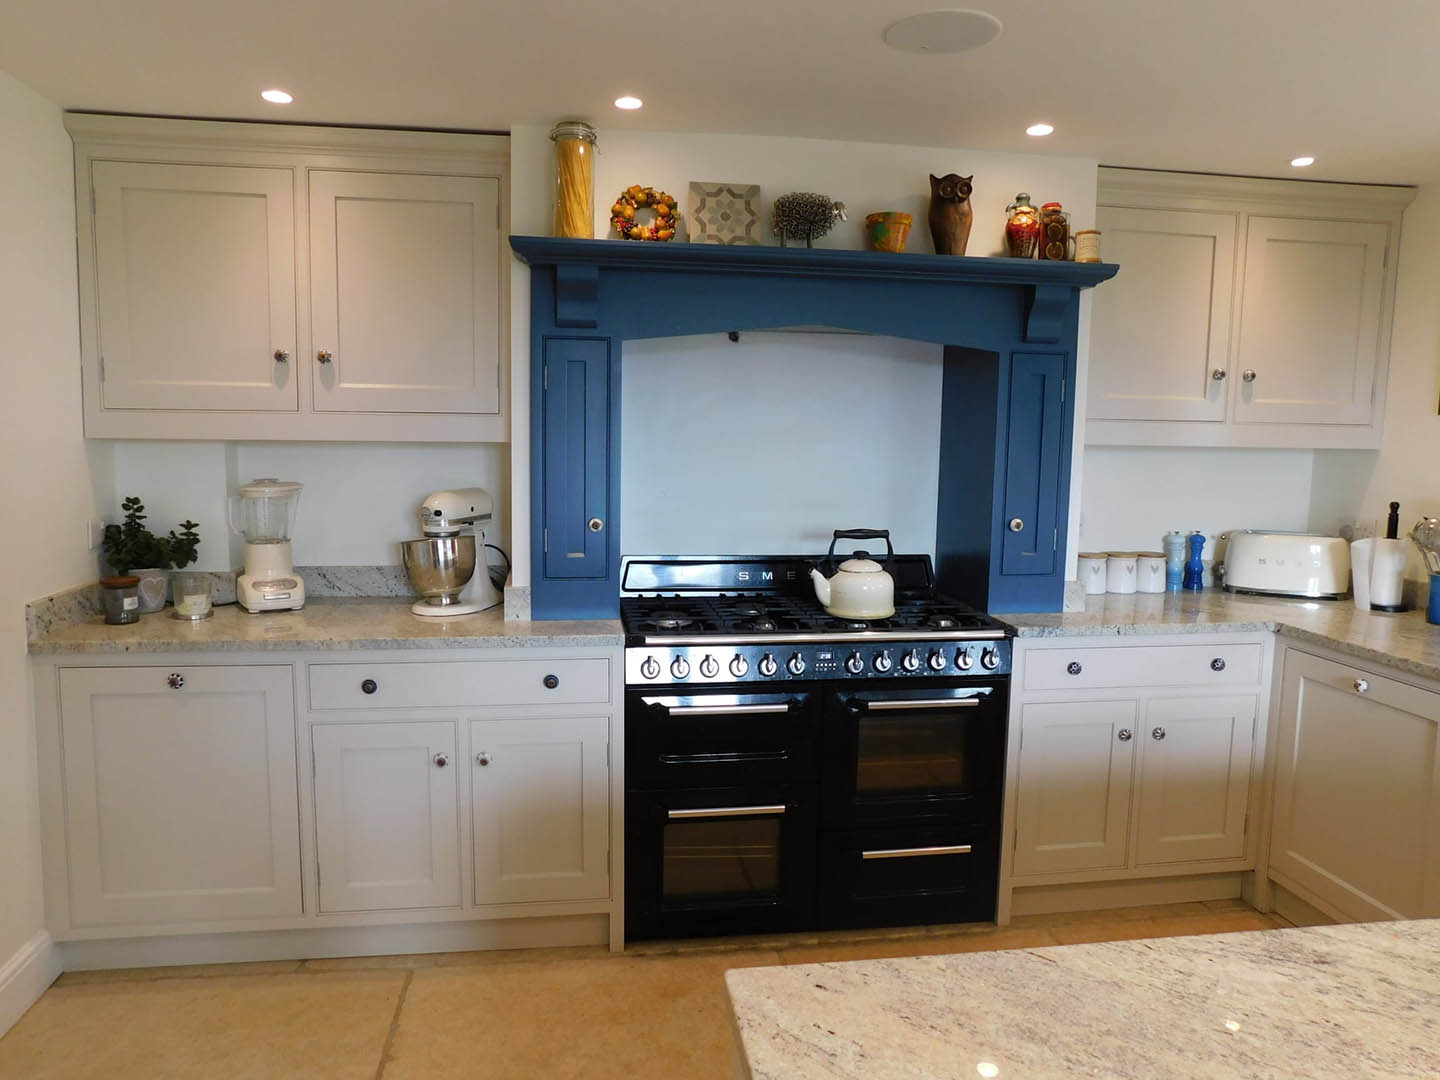 A kitchen cooker hood over a stove with a kettle on one of the hobs.